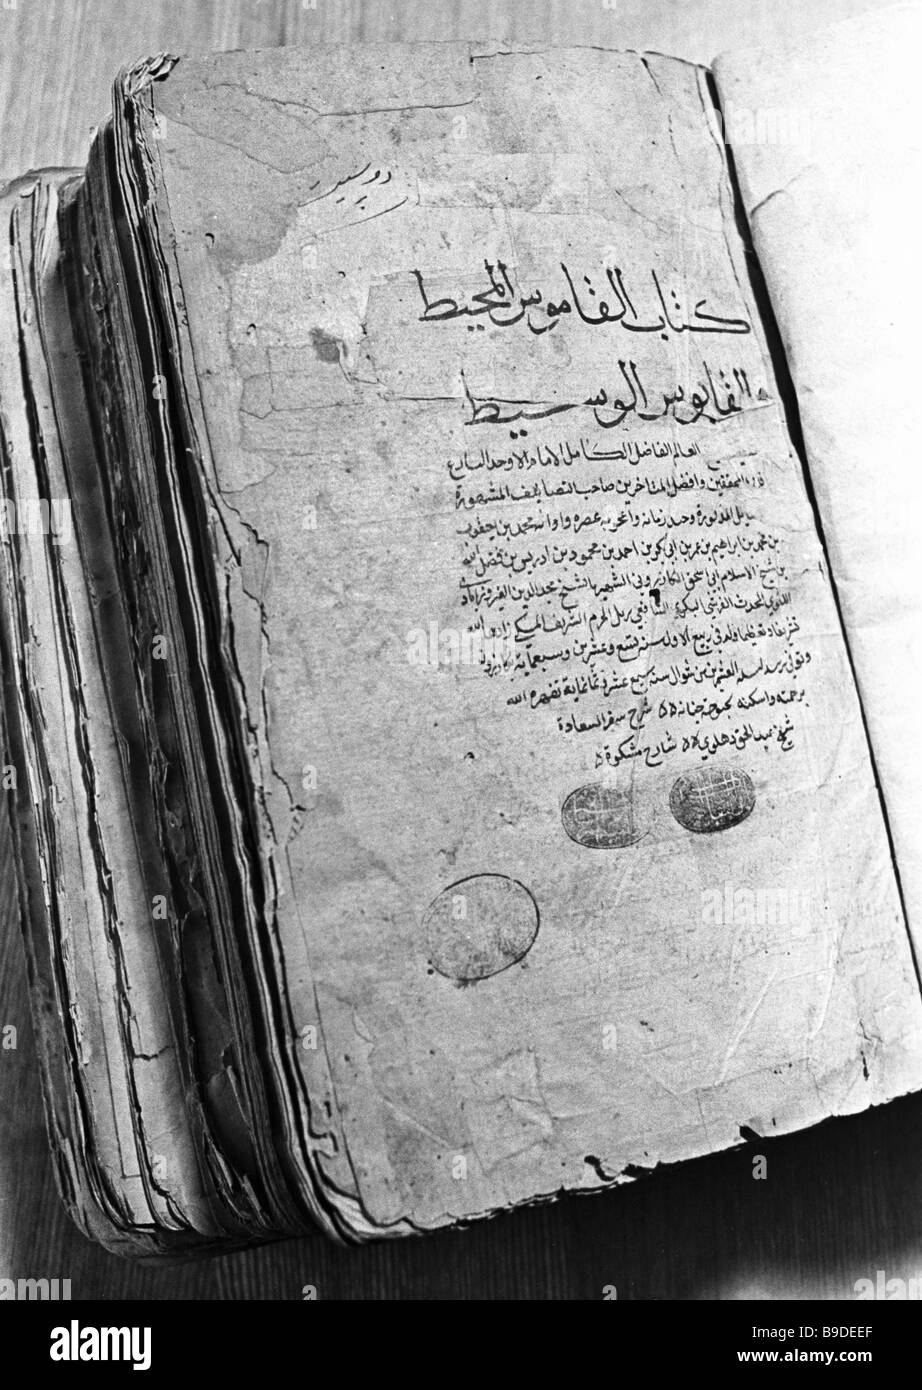 Arab dictionary compiled by Muhammad al Firuzabadi 1329 1414 from collection of the Alisher Navoi Literary Museum - Stock Image